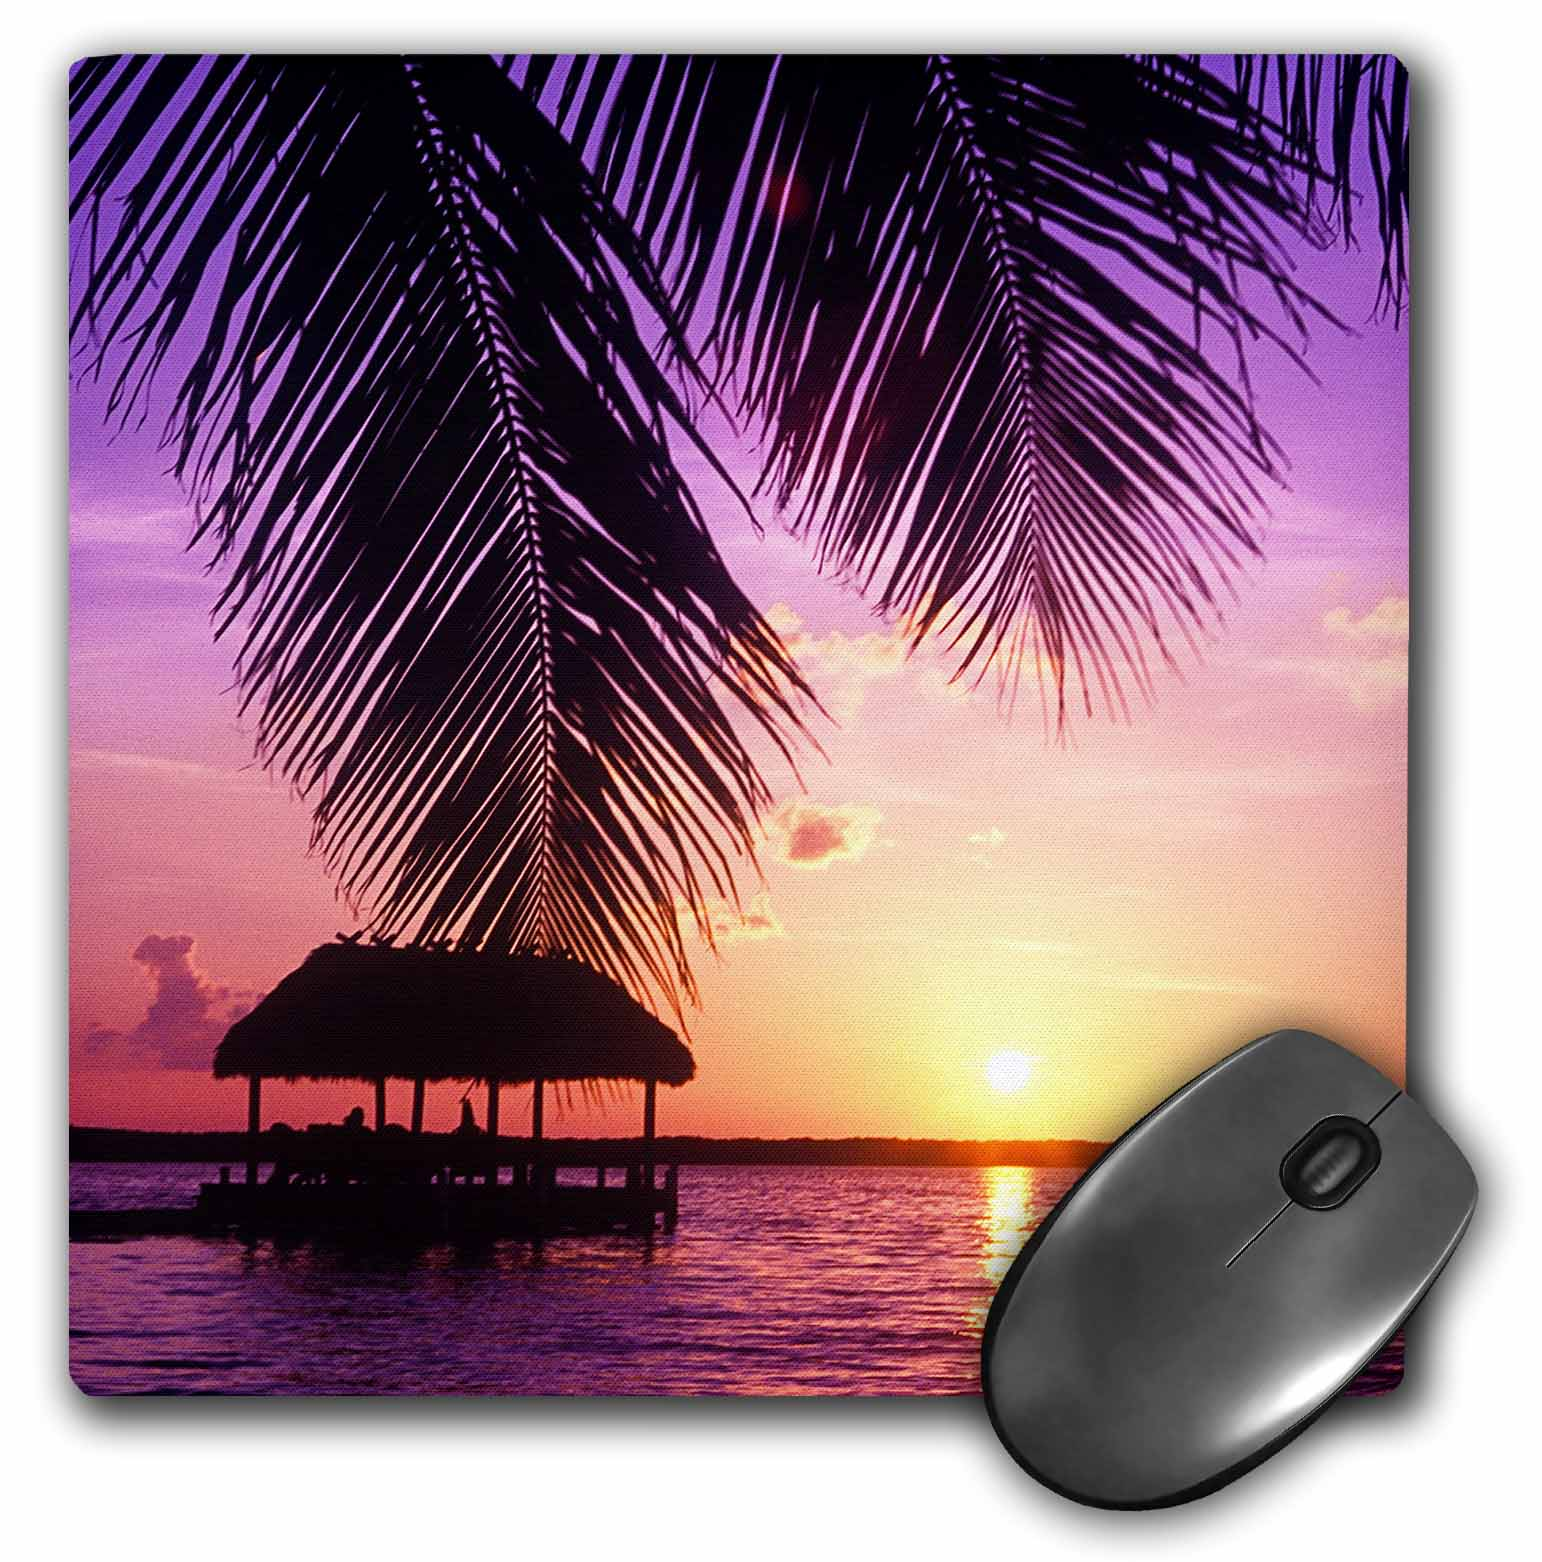 3dRose John Pennekamp State Park, Key West, Florida - US10 GJO0522 - Greg Johnston, Mouse Pad, 8 by 8 inches